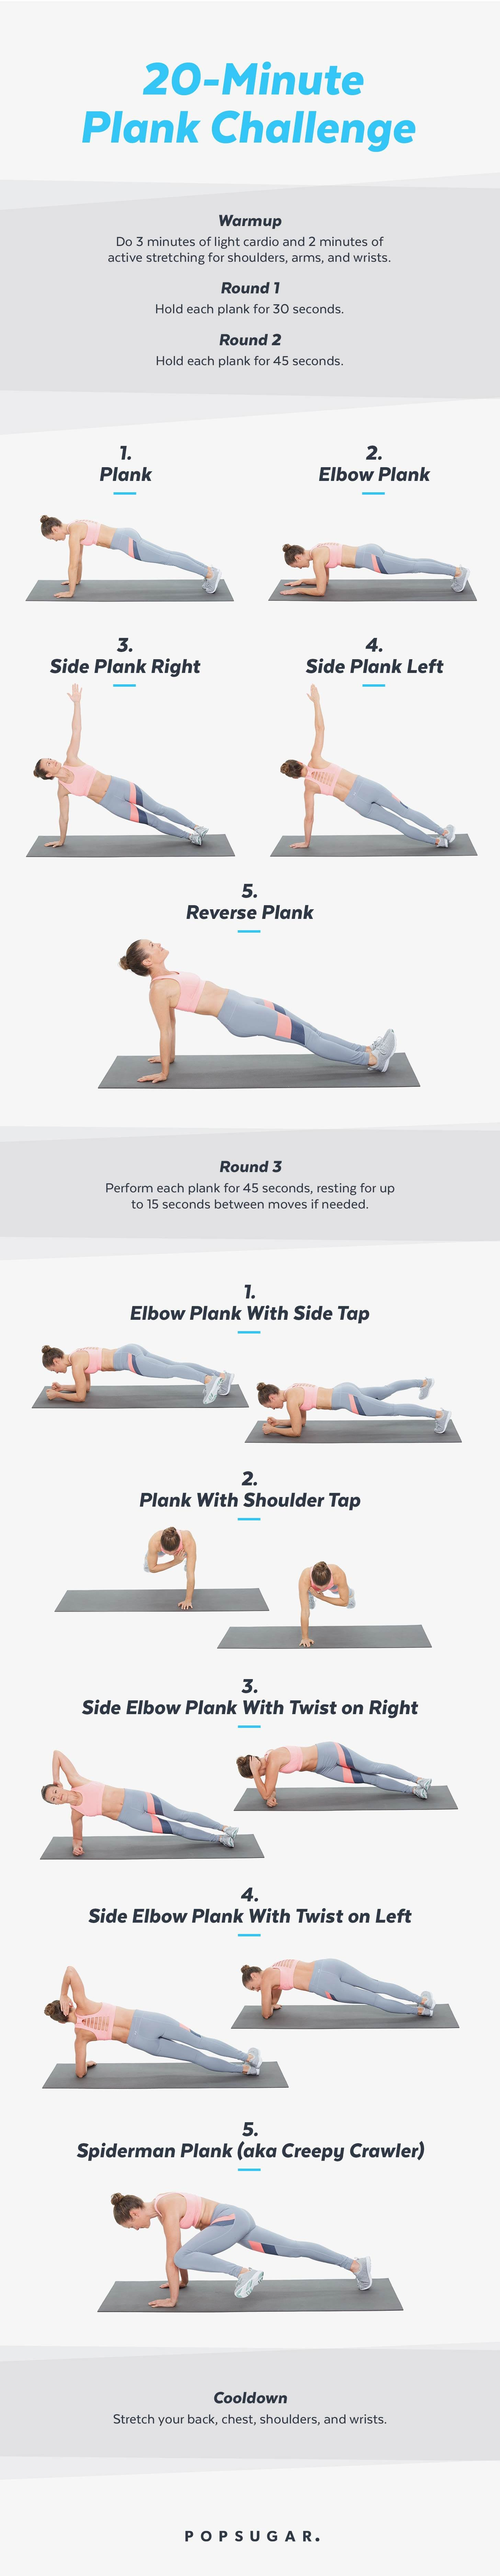 image relating to Plank Challenge Printable titled Printable Plank Issue Exercise routine POPSUGAR Health